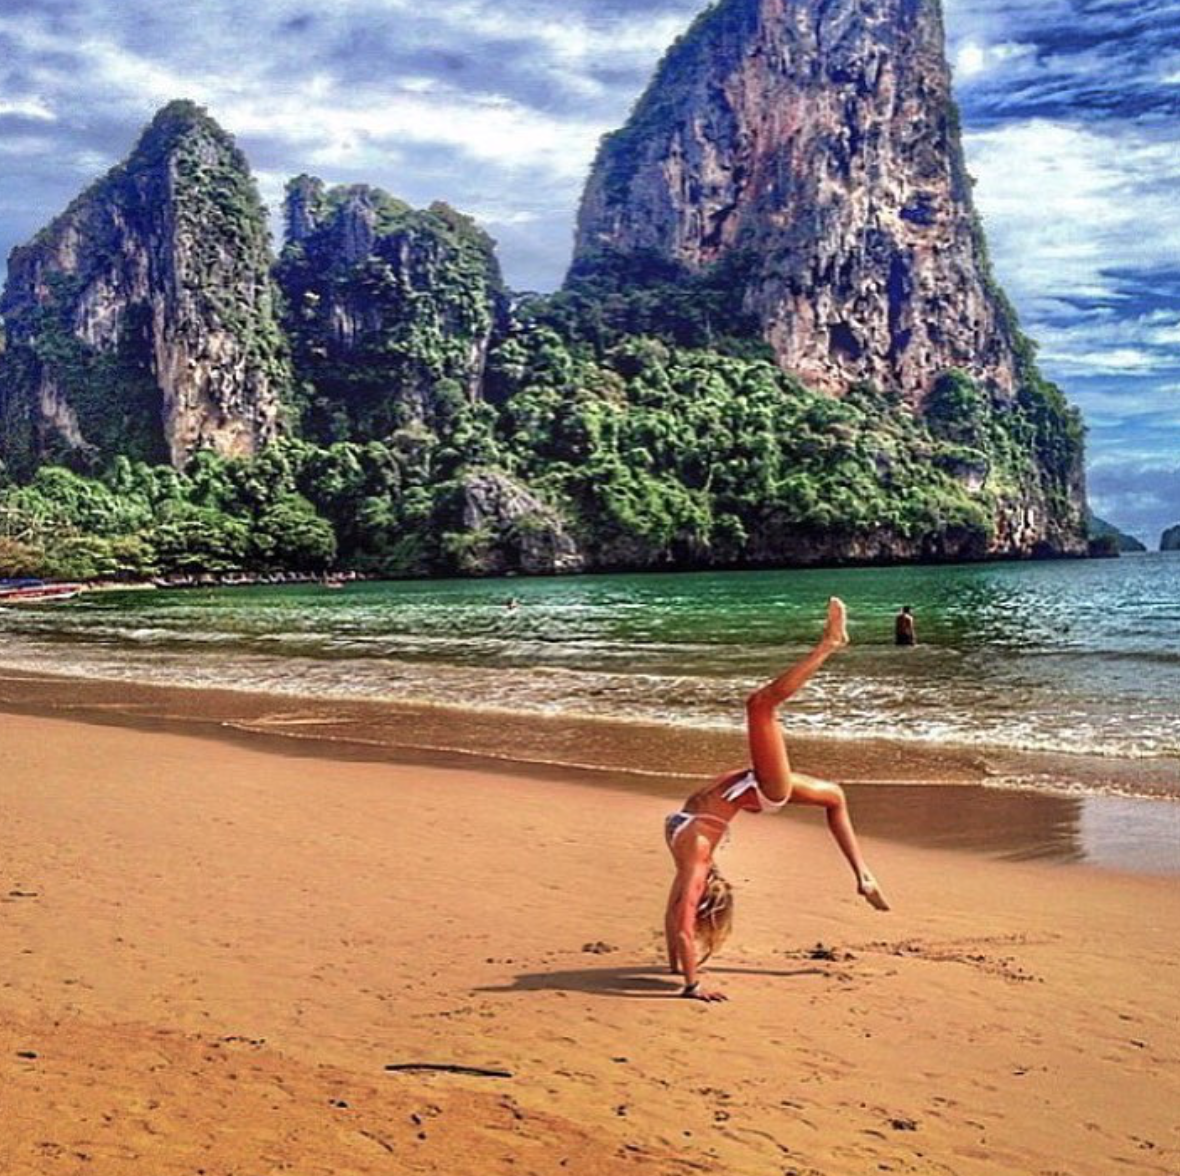 Practice daily stretching to support wellness while traveling